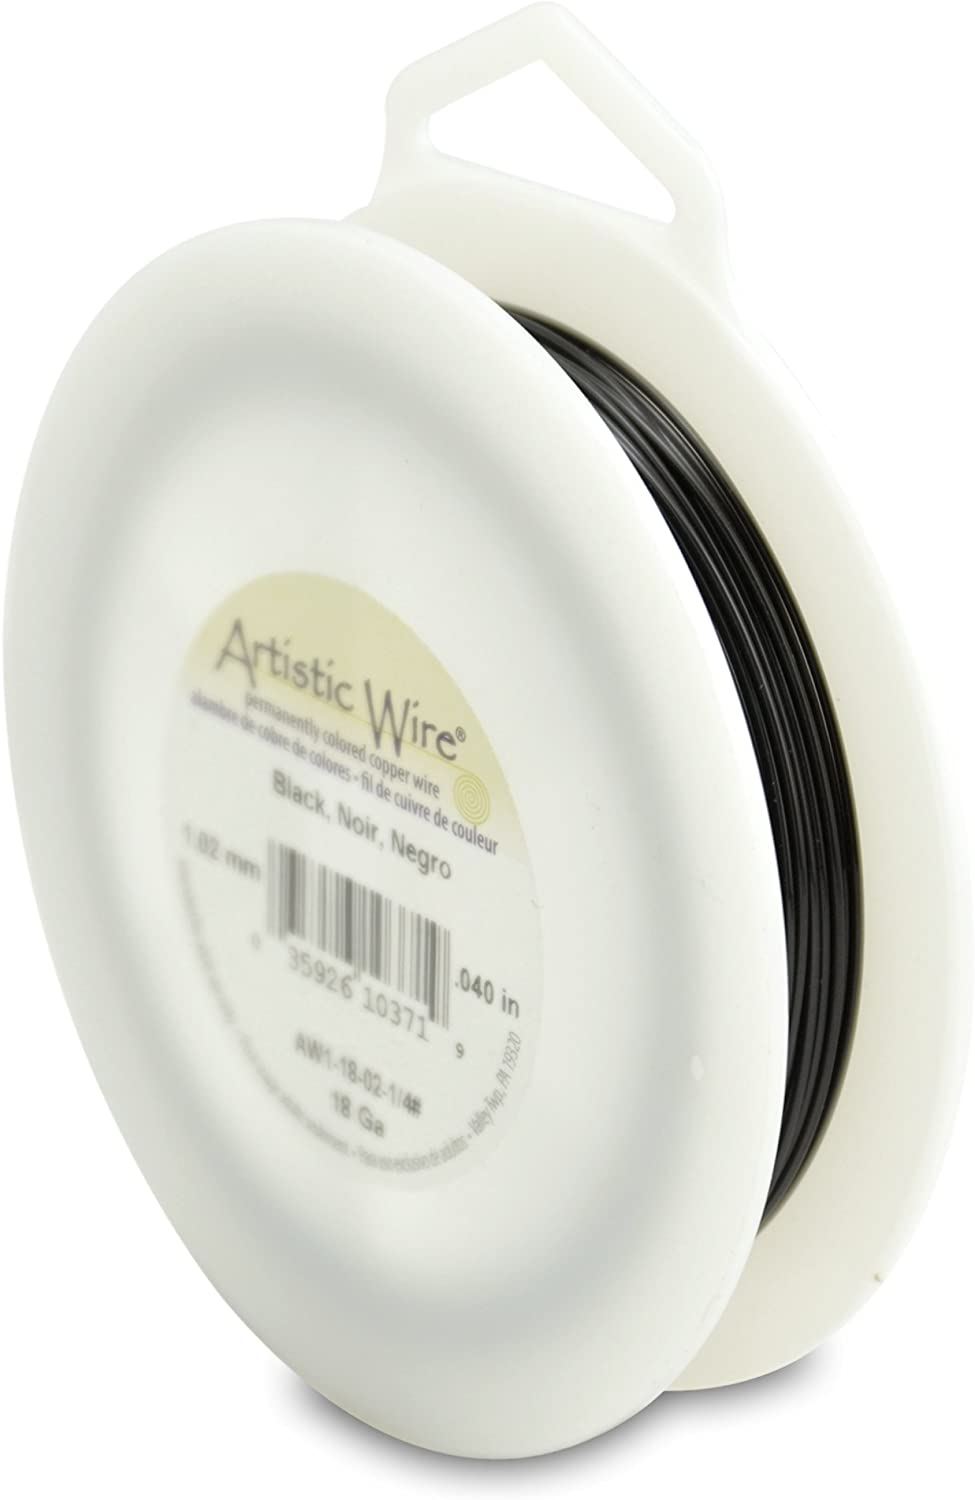 Artistic Wire, 18 Gauge, Black Color, 1/4 Pound (113 Grams) Craft Wire